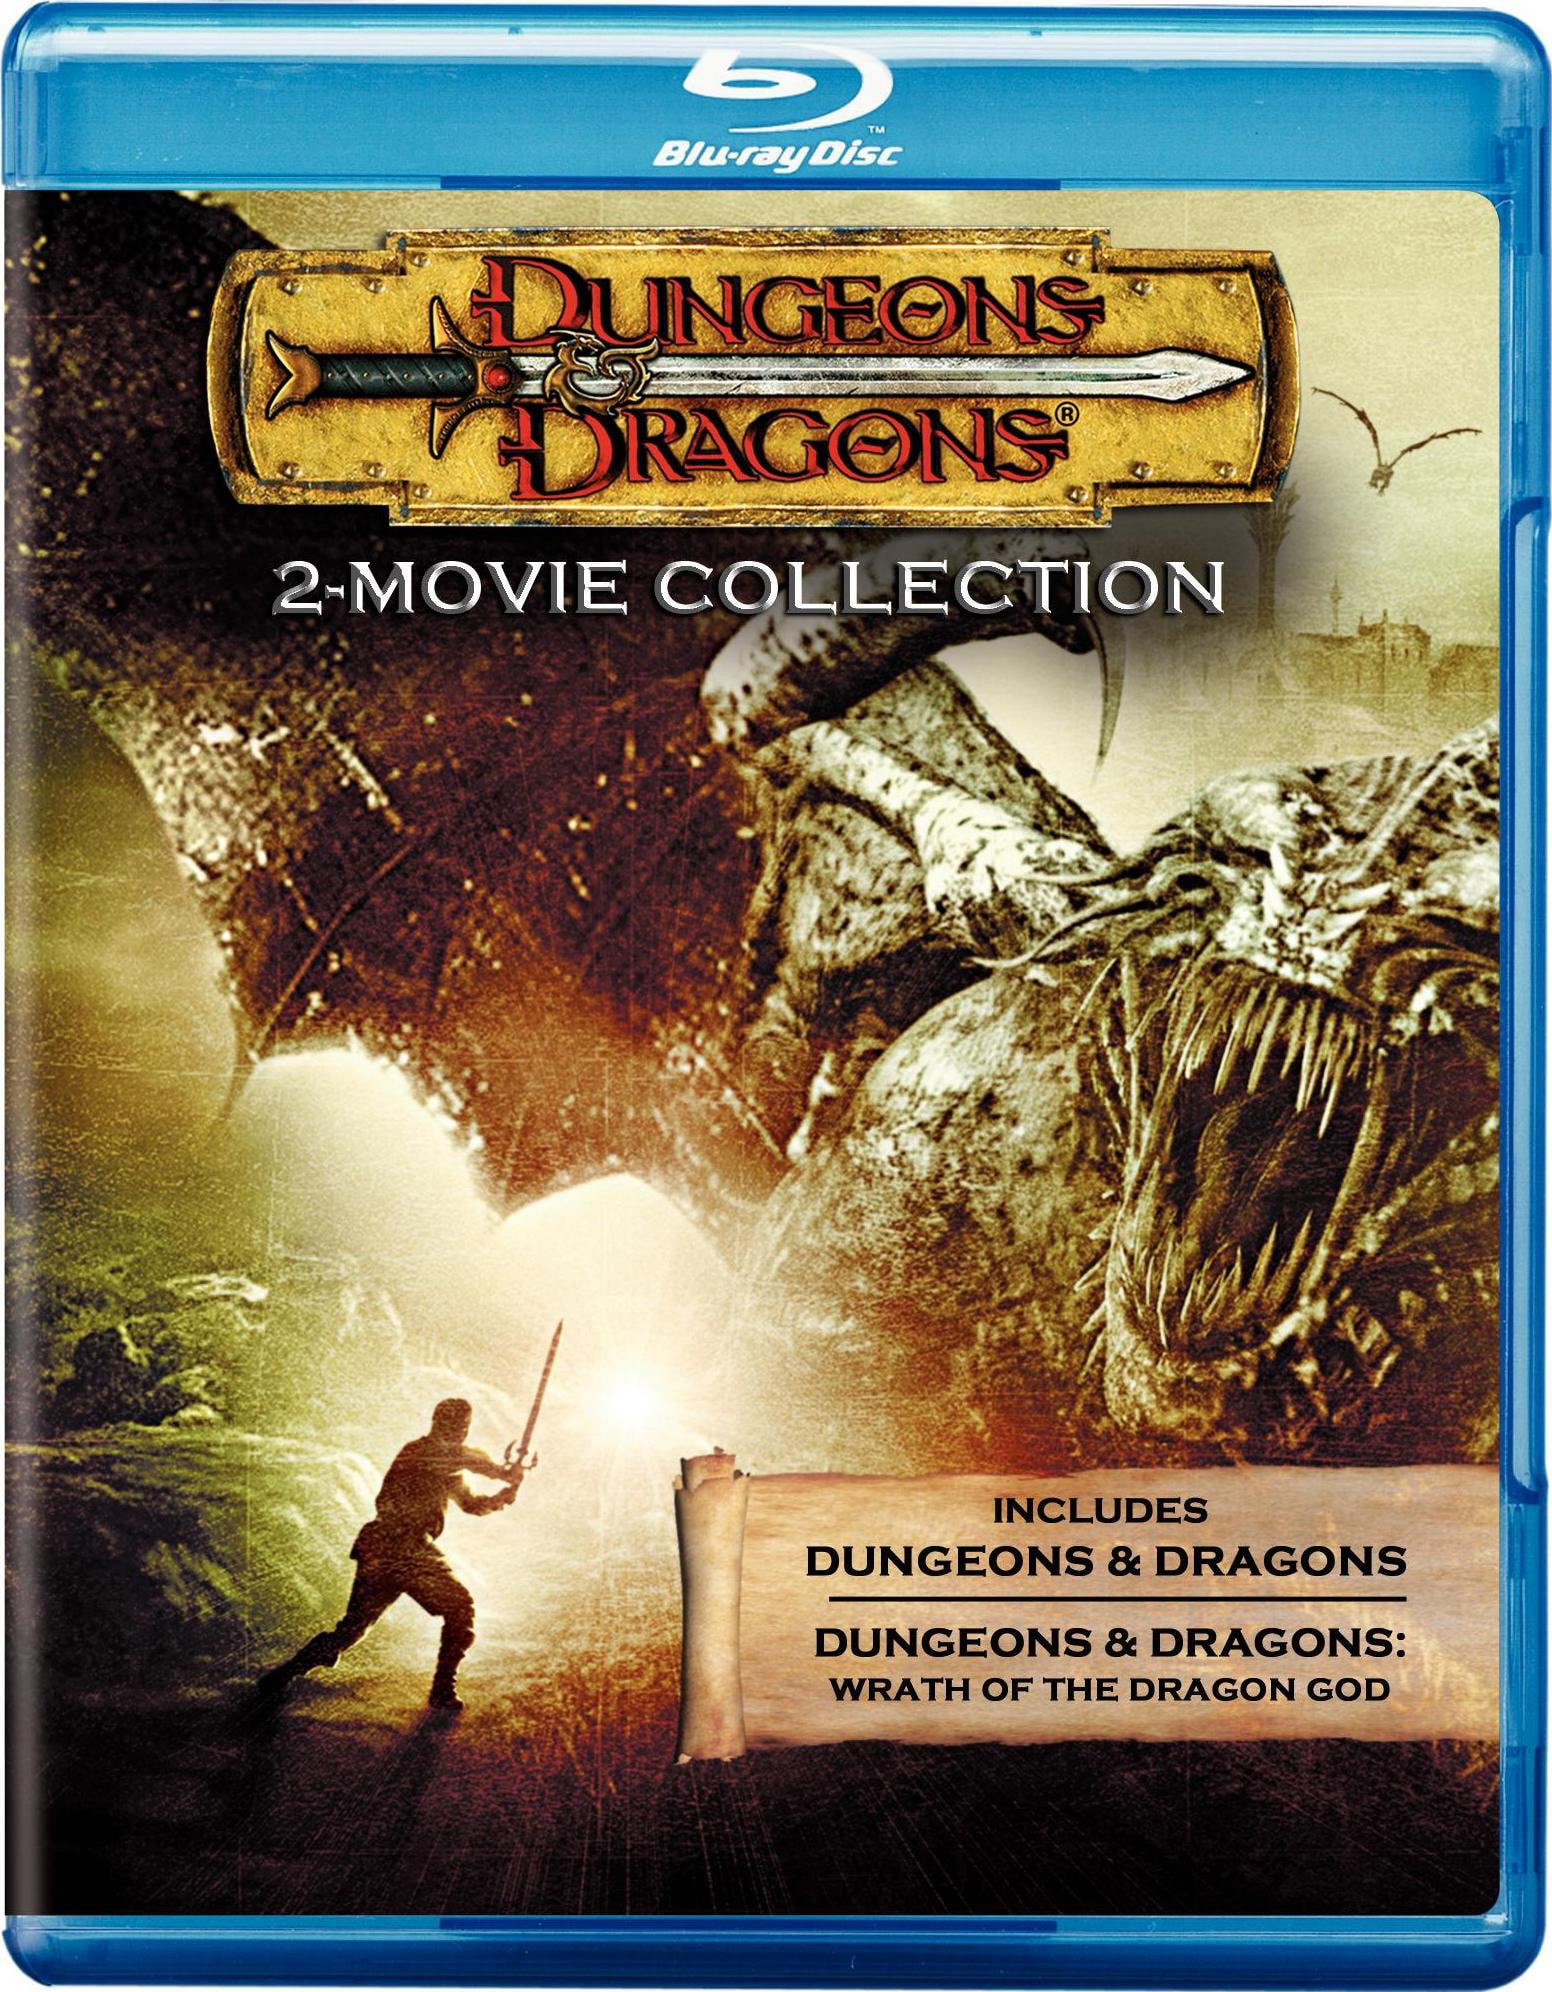 Dungeons & Dragons/Dungeons & Dragons: Wrath of the Dragon God (Blu-ray Disc)